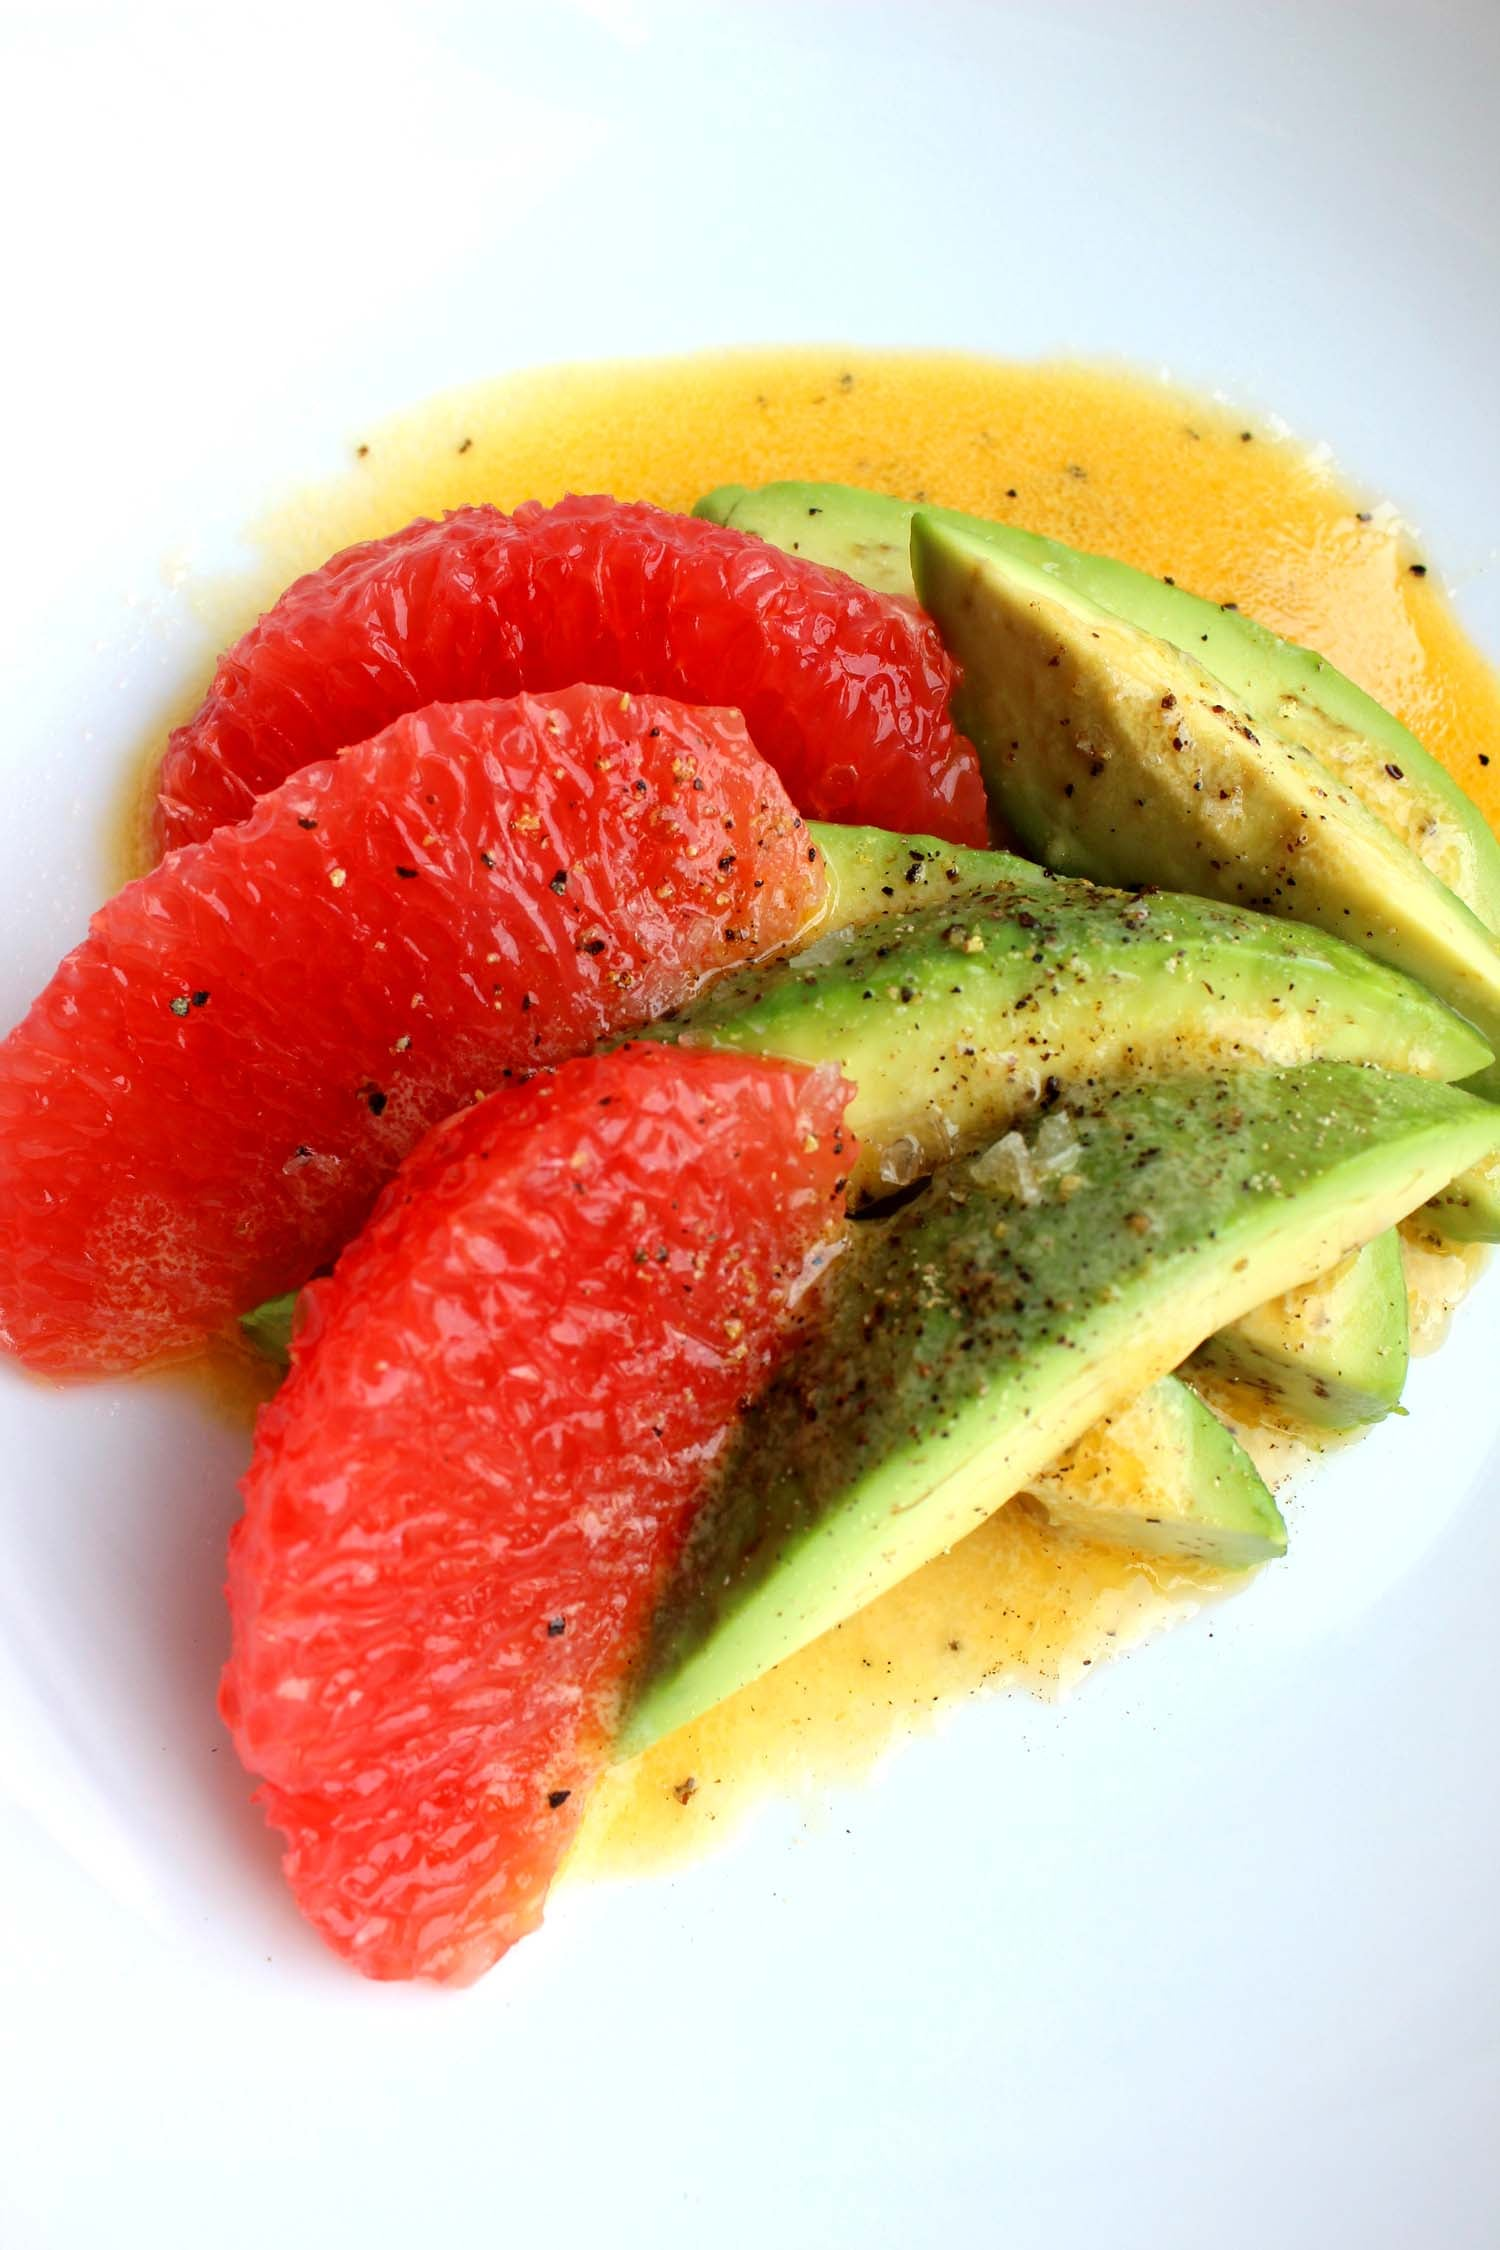 Avocado and Grapefruit Salad   | Image:   Laura Messersmith